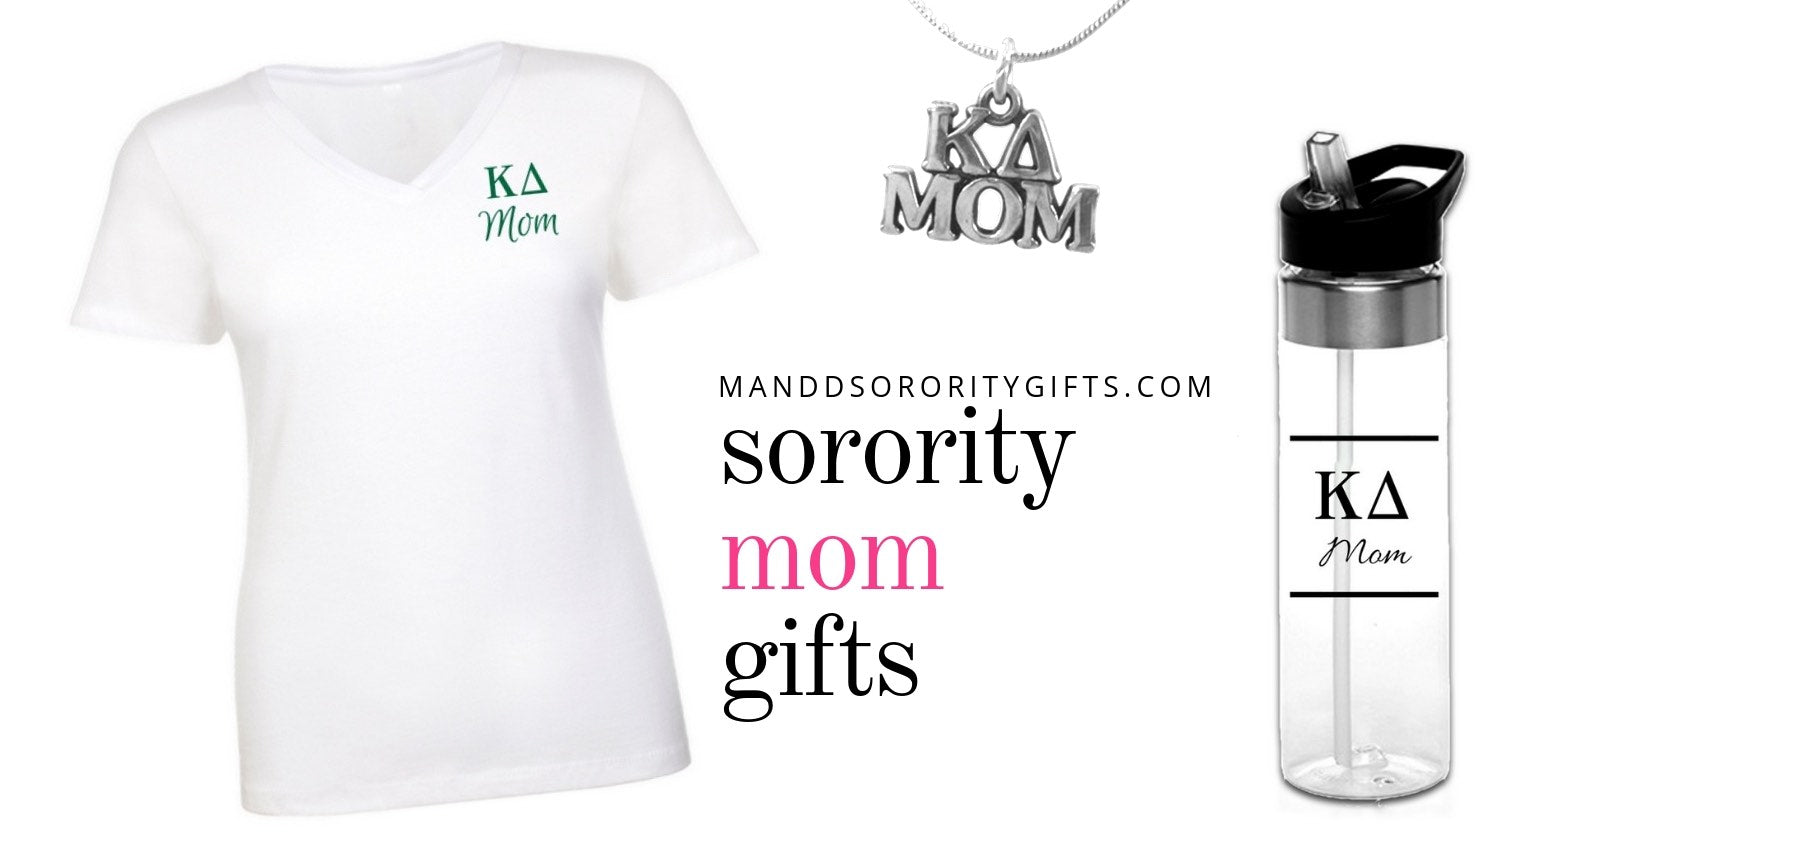 Kappa Delta Mom Gifts I 12 Reasons Moms Are the Best